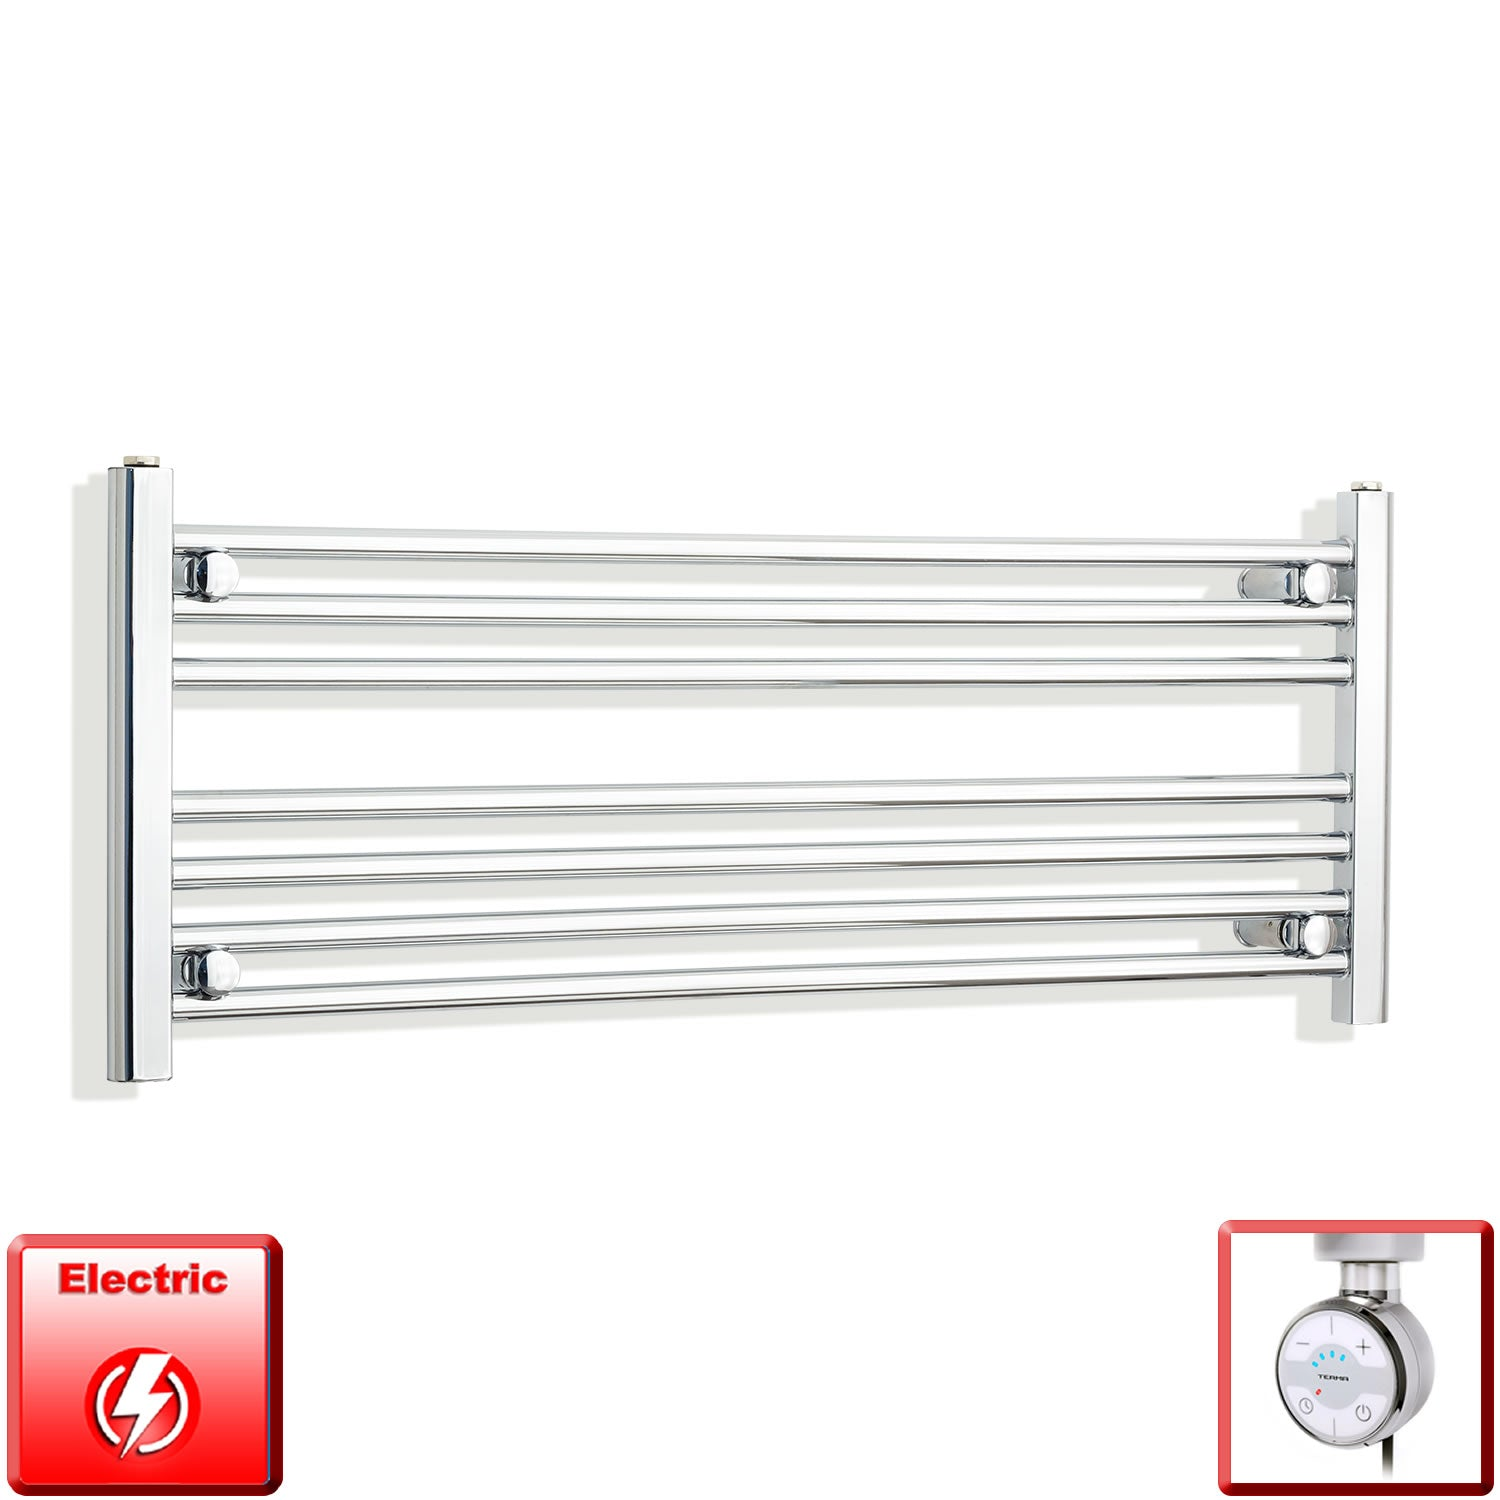 1200mm Wide 400mm High Flat Chrome Pre-Filled Electric Heated Towel Rail Radiator HTR,MOA Thermostatic Element